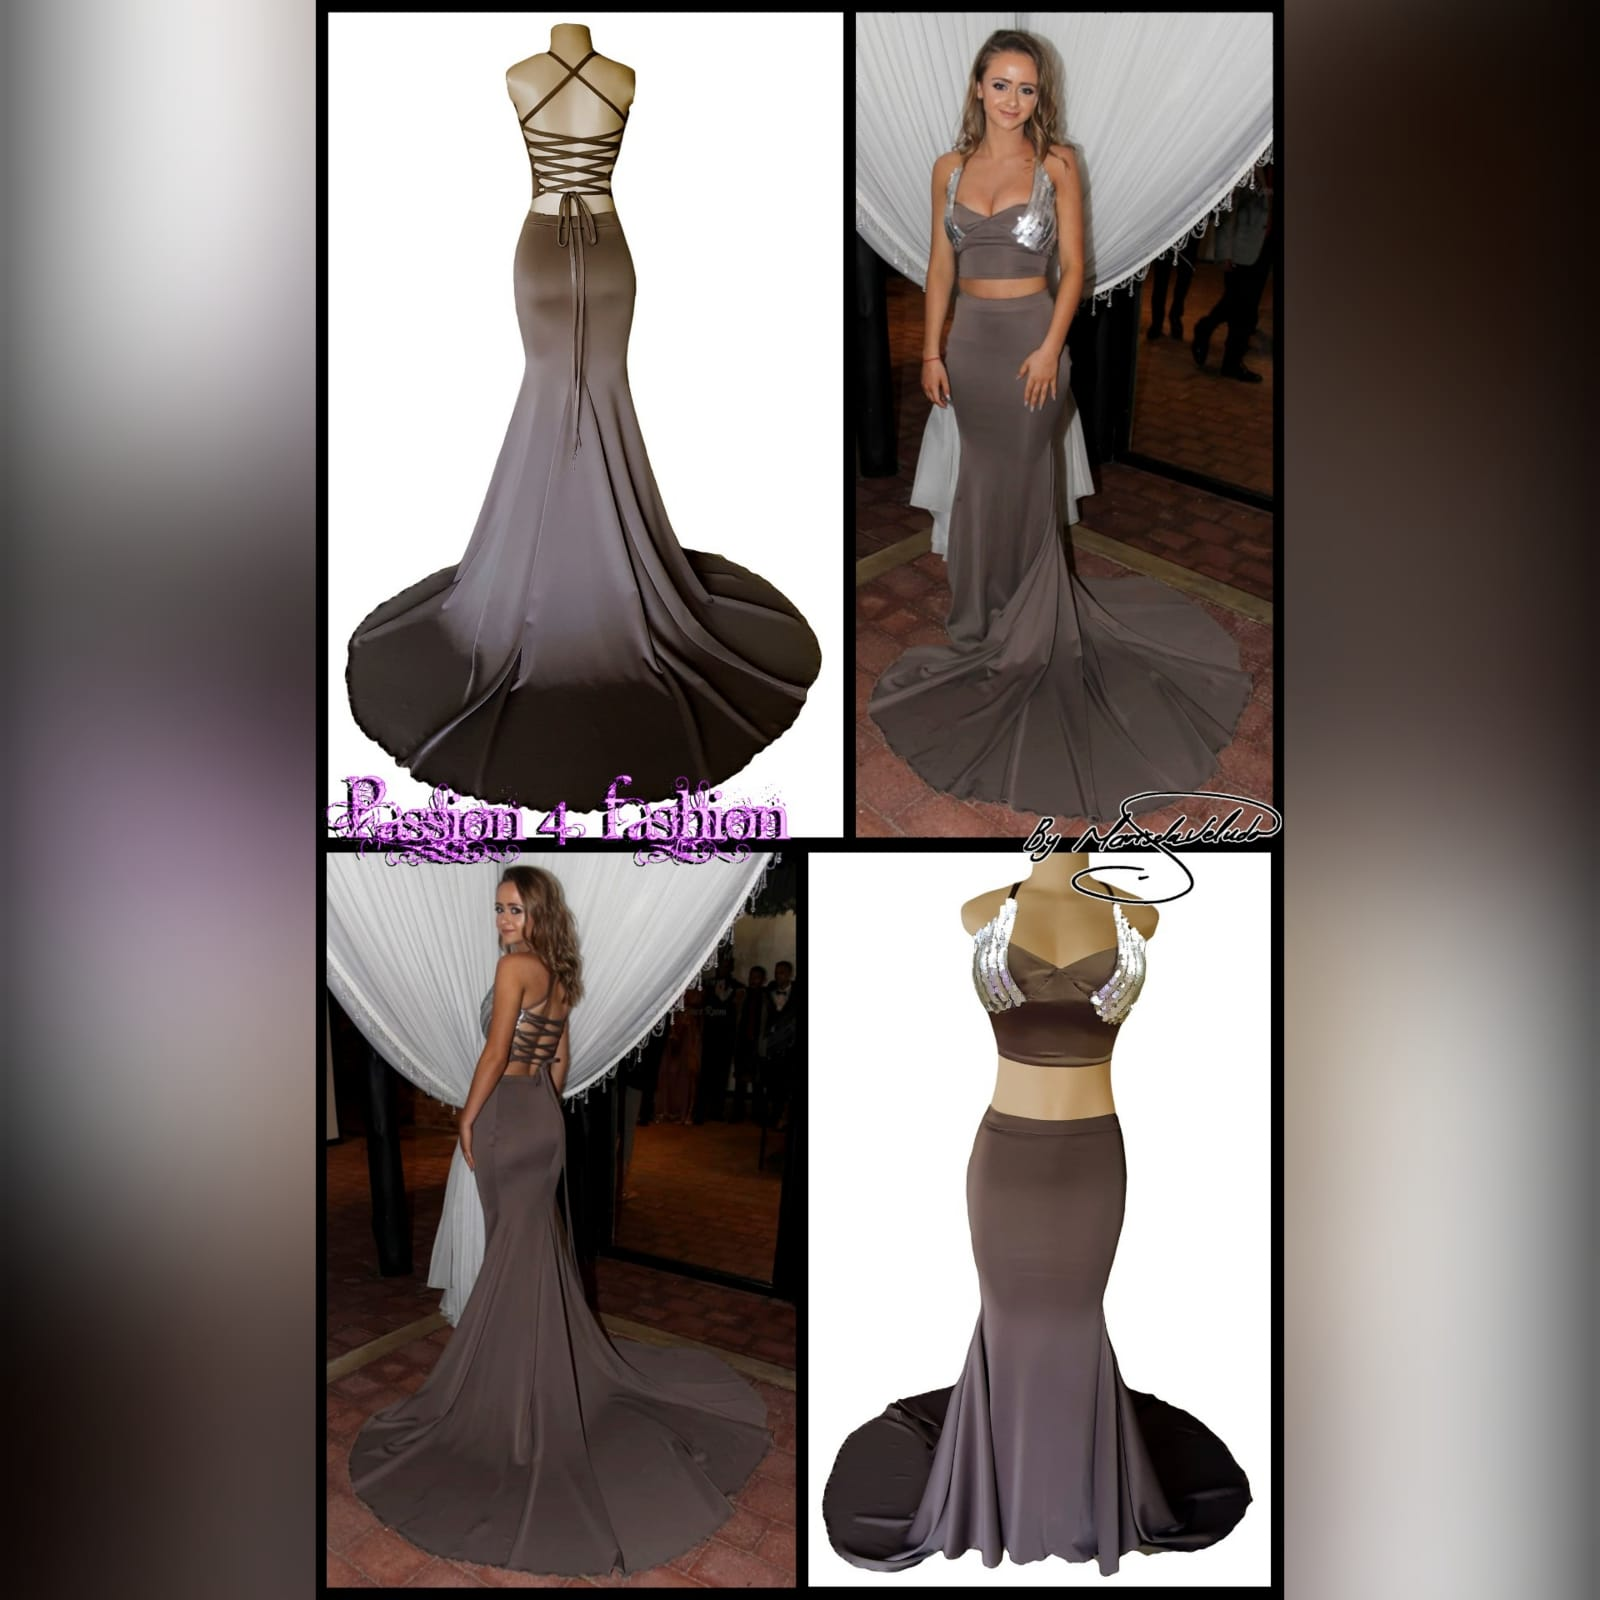 2 piece brown gray prom dress 6 2 piece brown gray prom dress. Skirt as a soft mermaid. Top with an open lace up back. Bust detailed with sequins. With a long train.